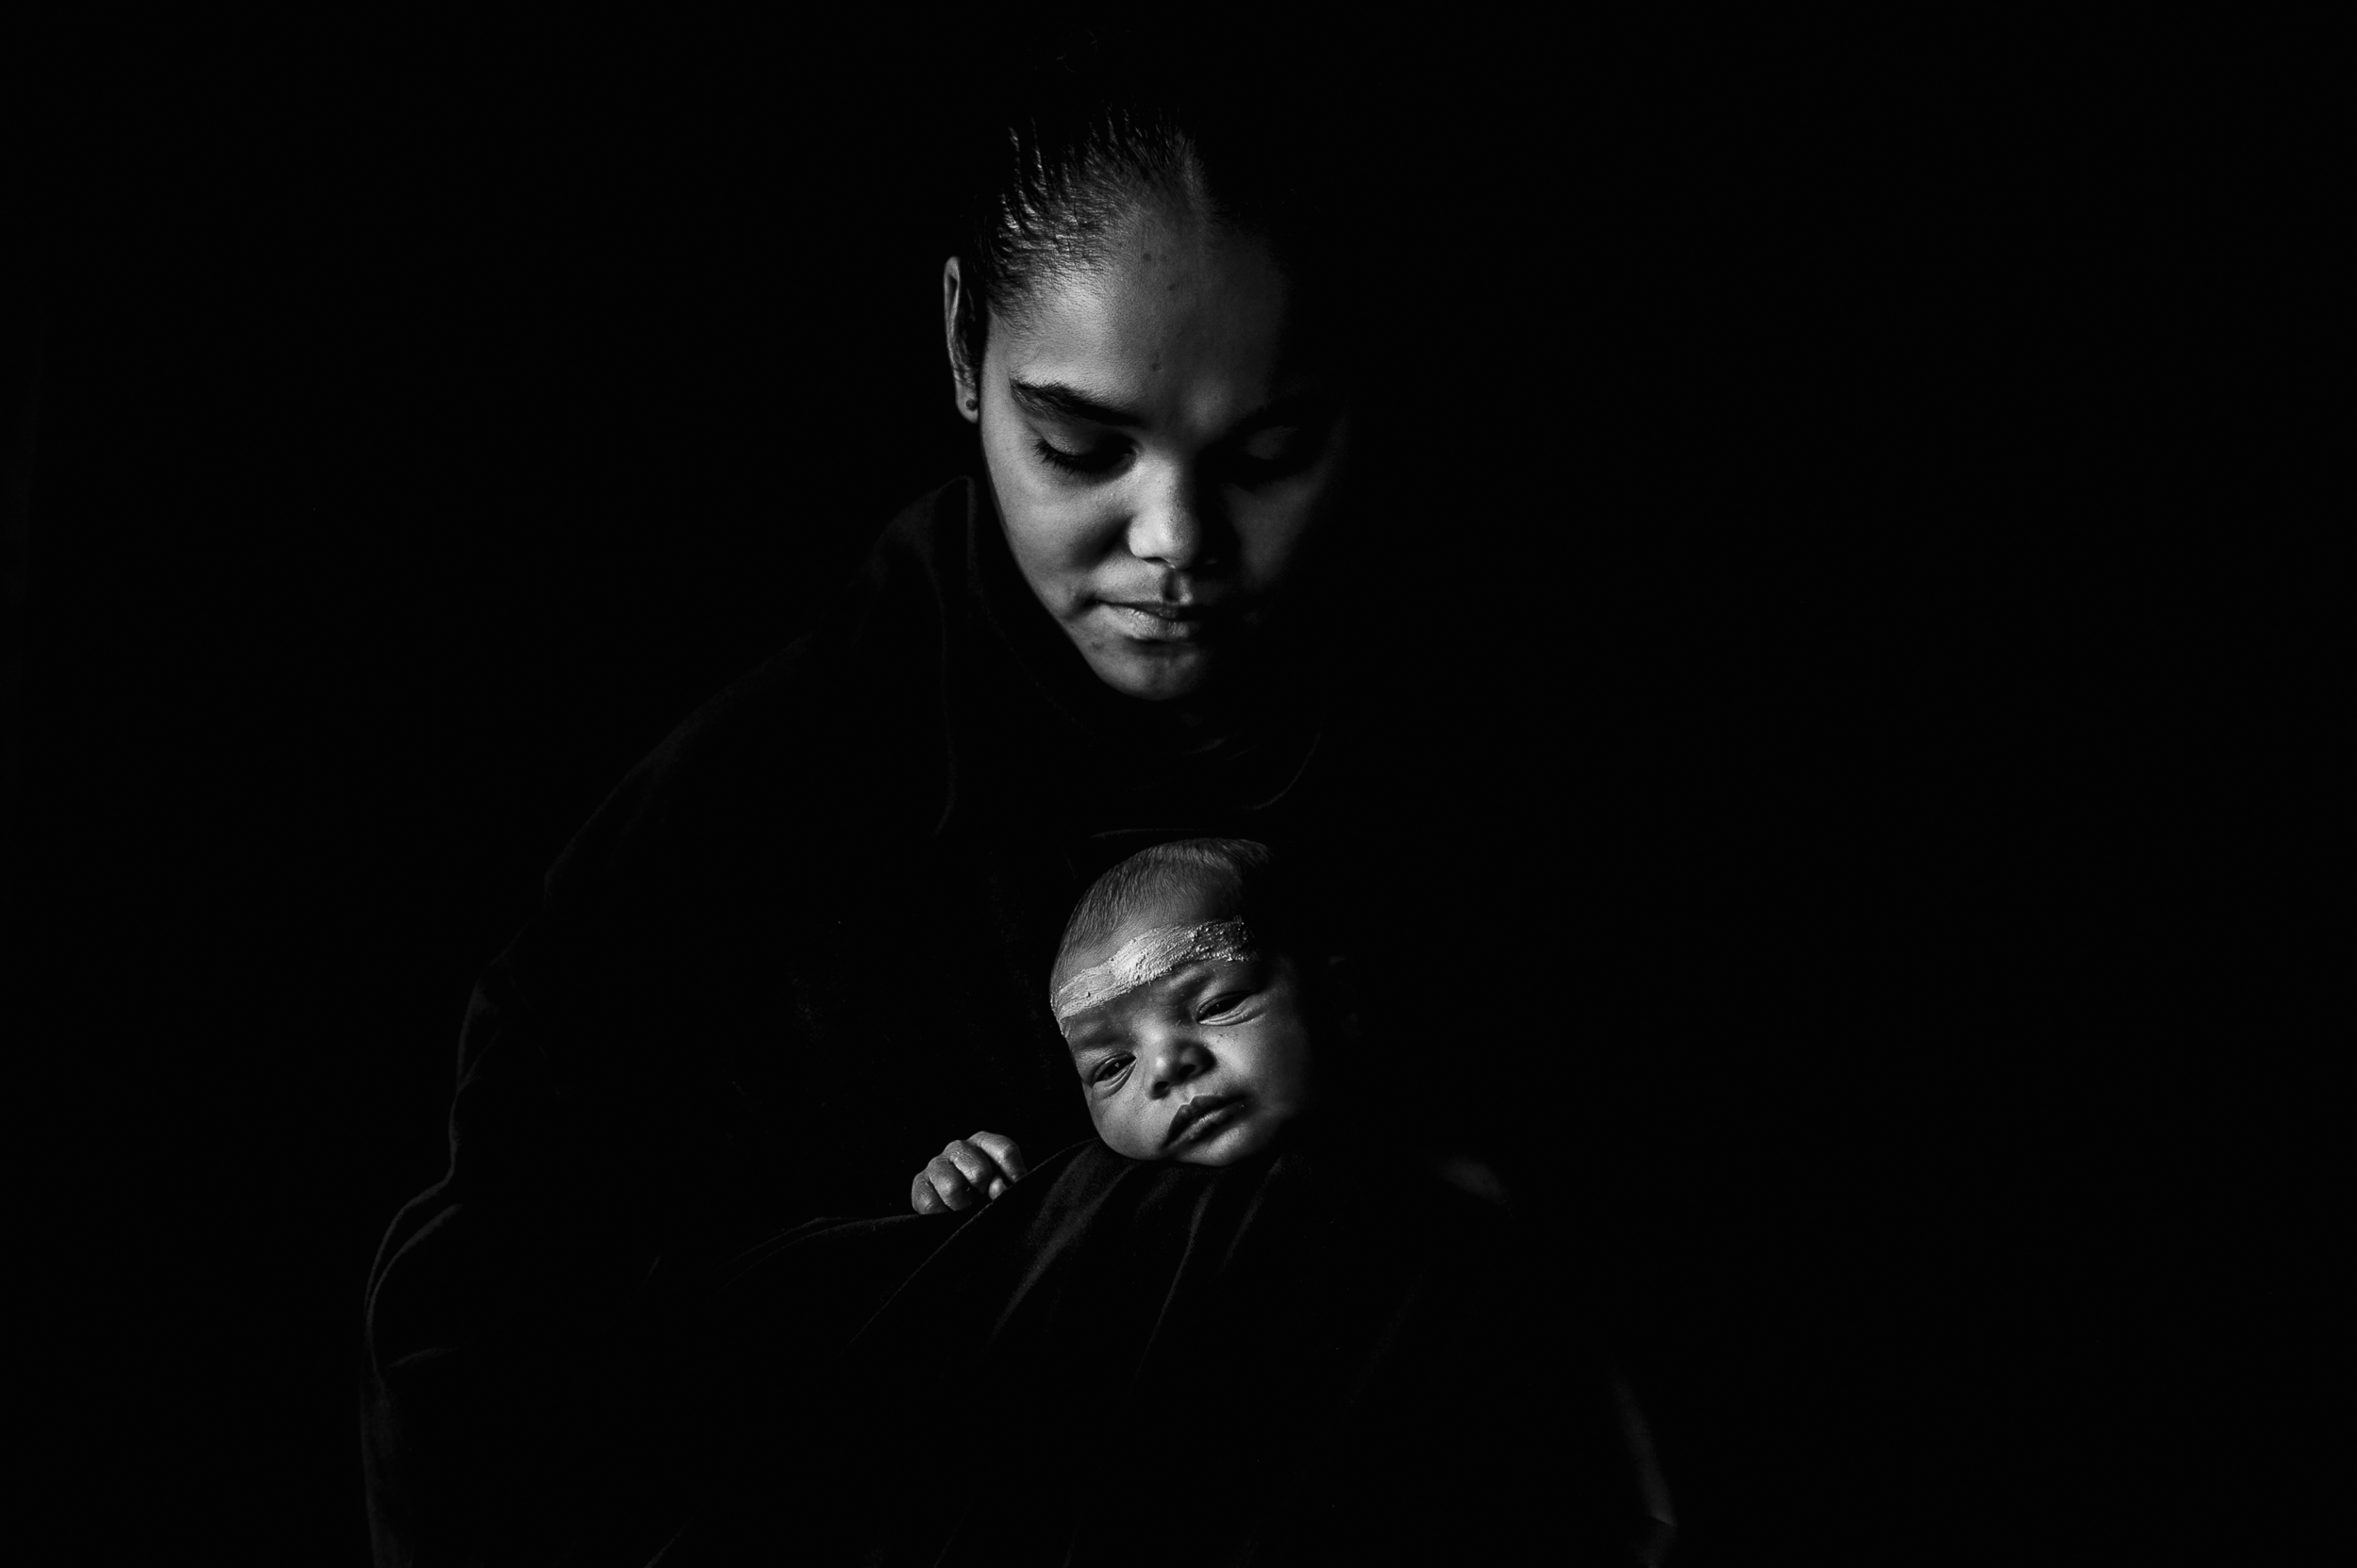 111. Young Mother NAIDOC by Sarah McFarlane